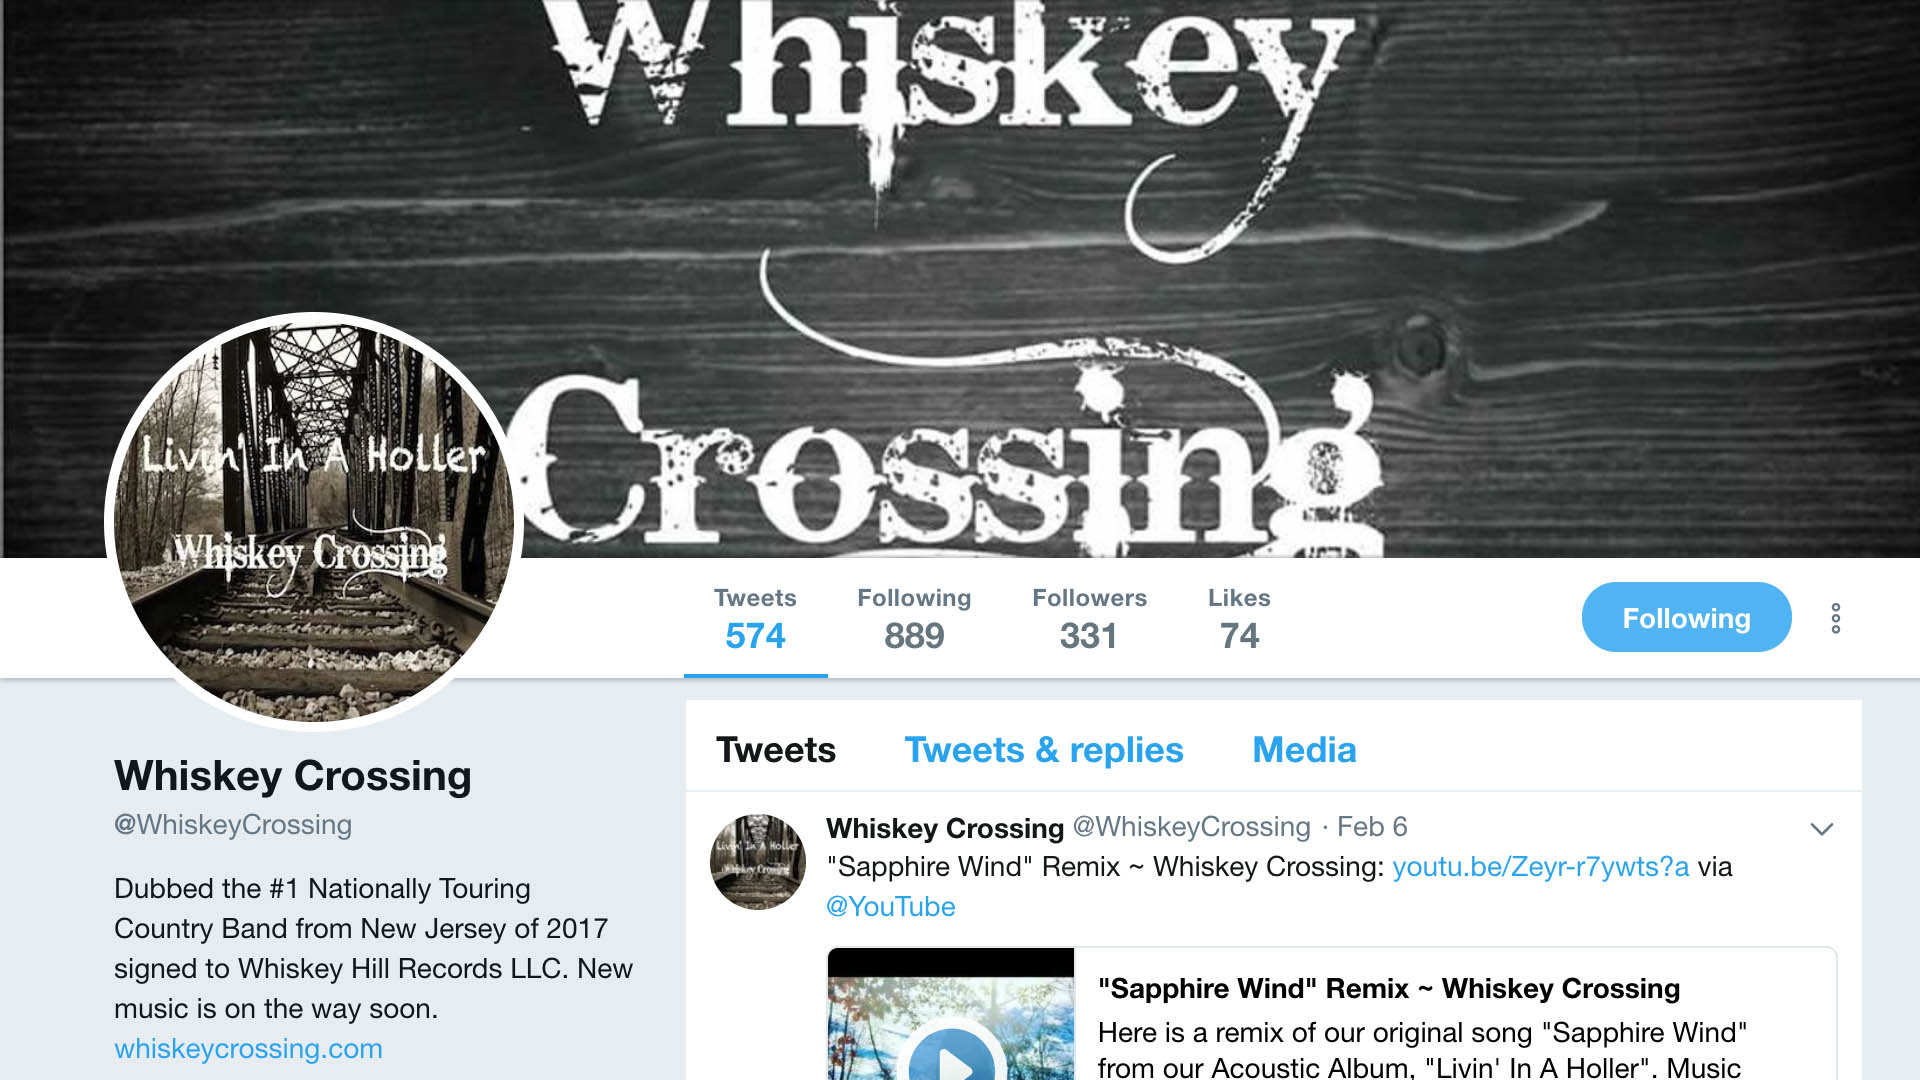 twitter.com/whiskeycrossing